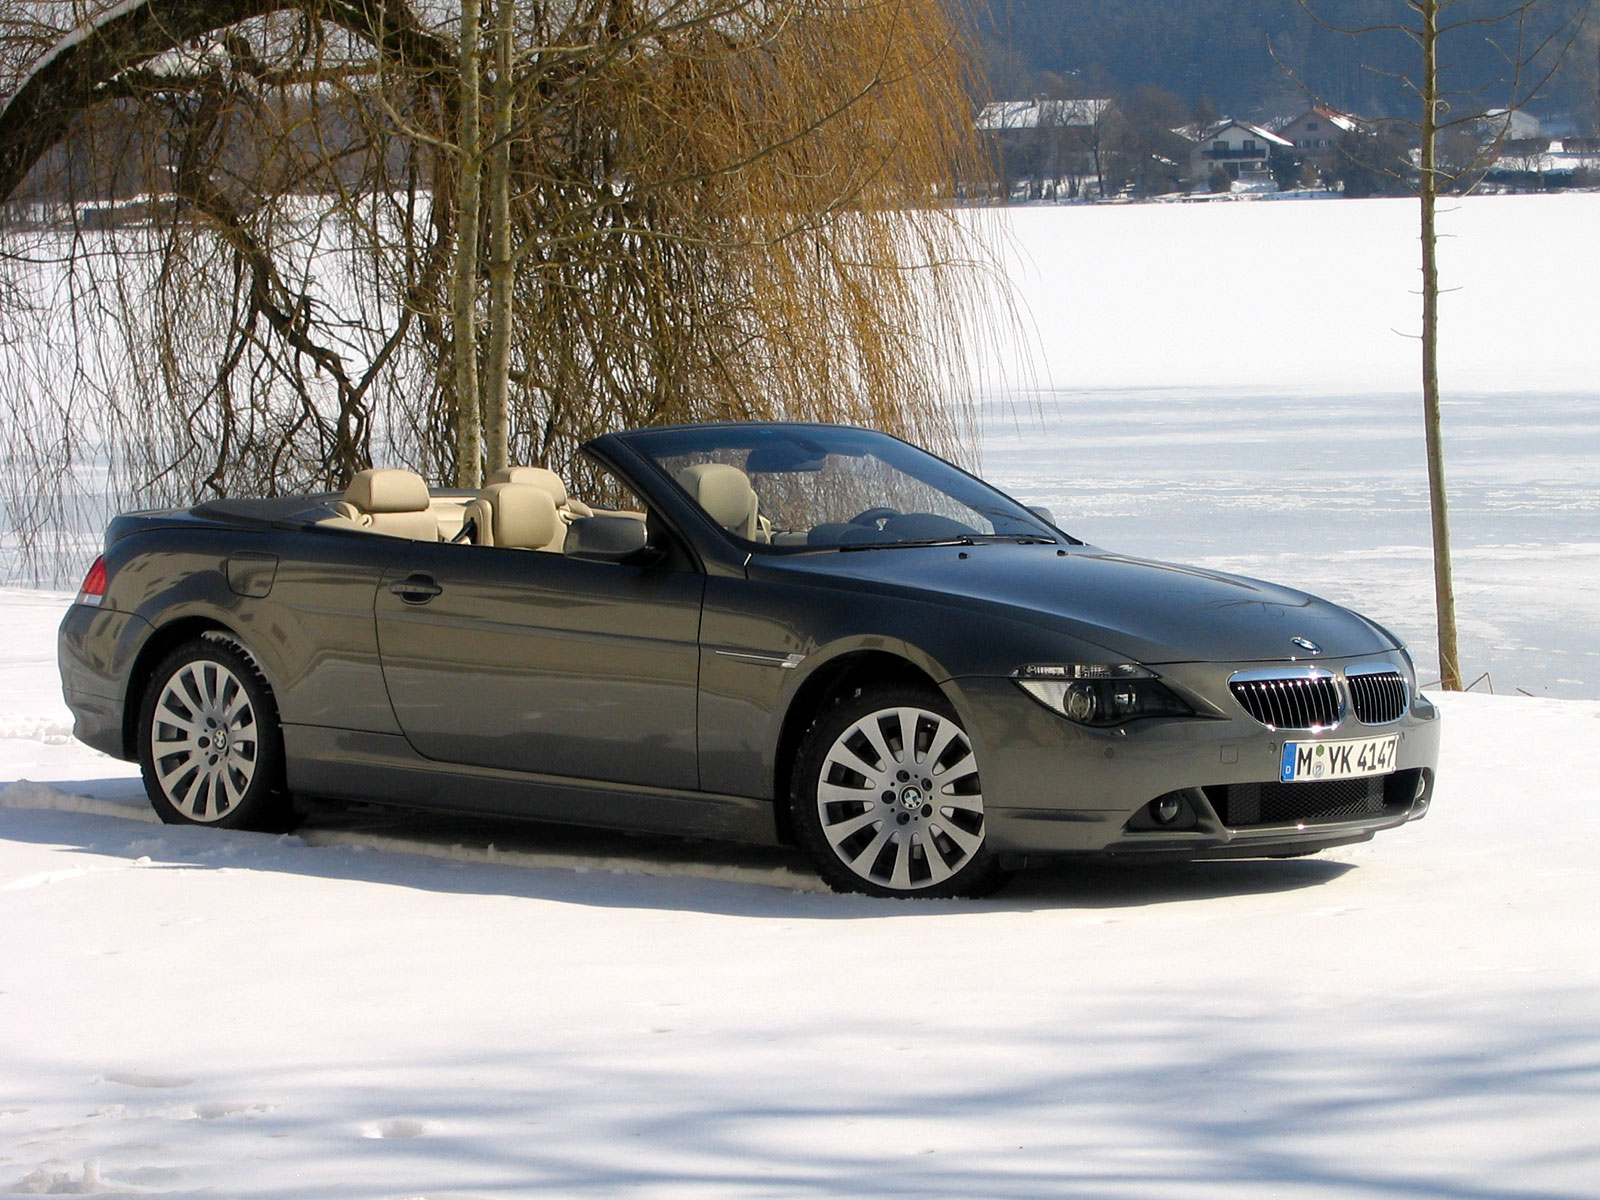 BMW 6-series photo 6144